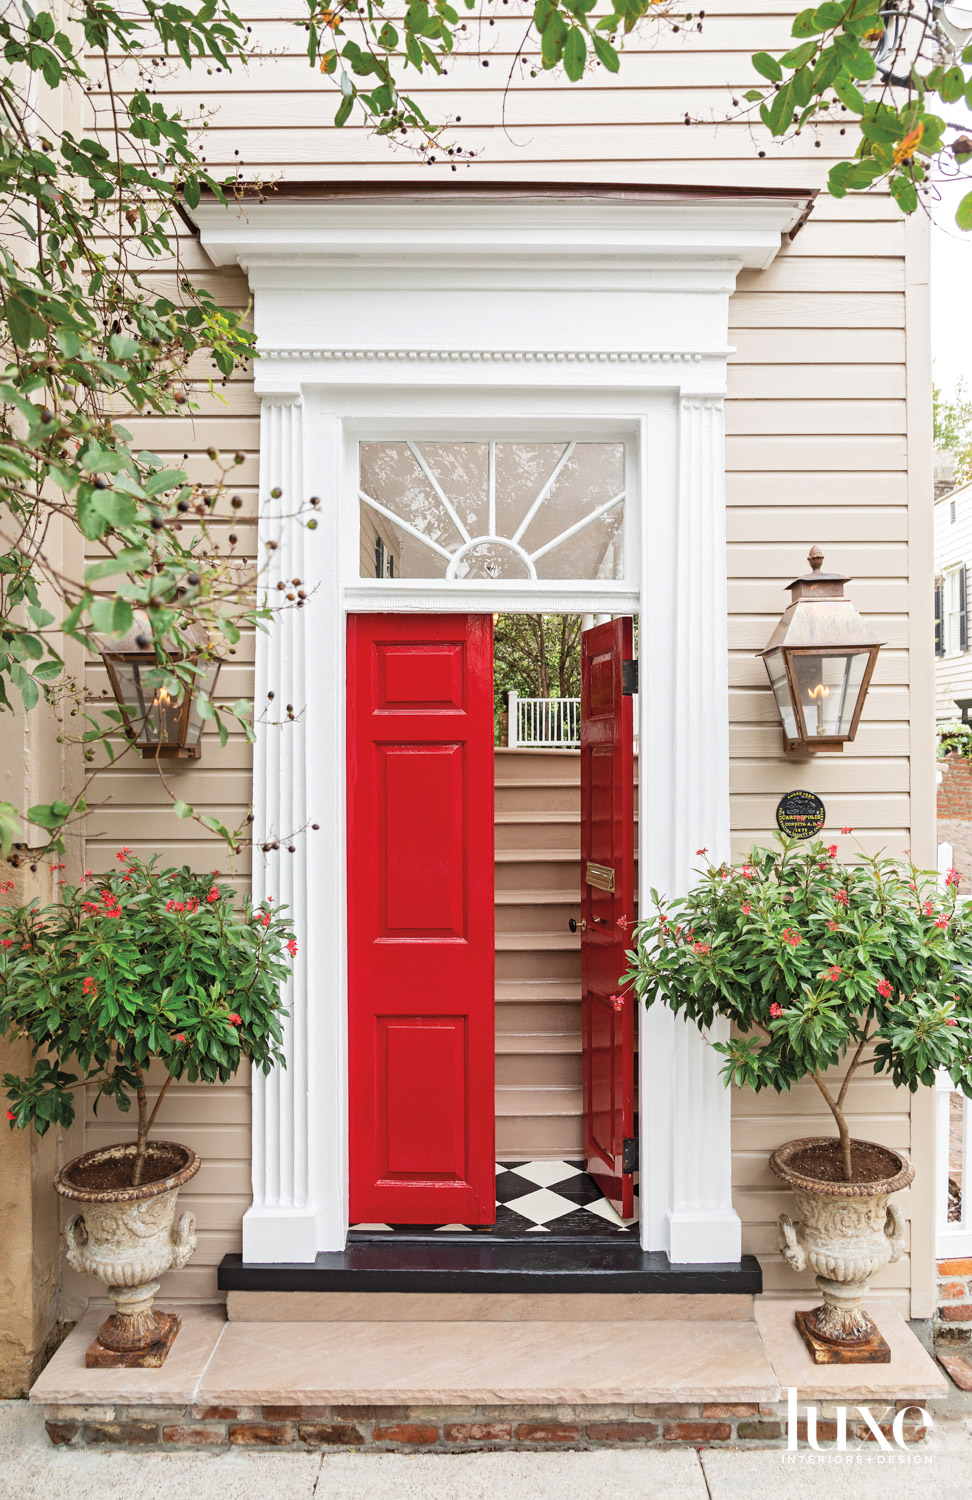 Tan-colored house with red doors